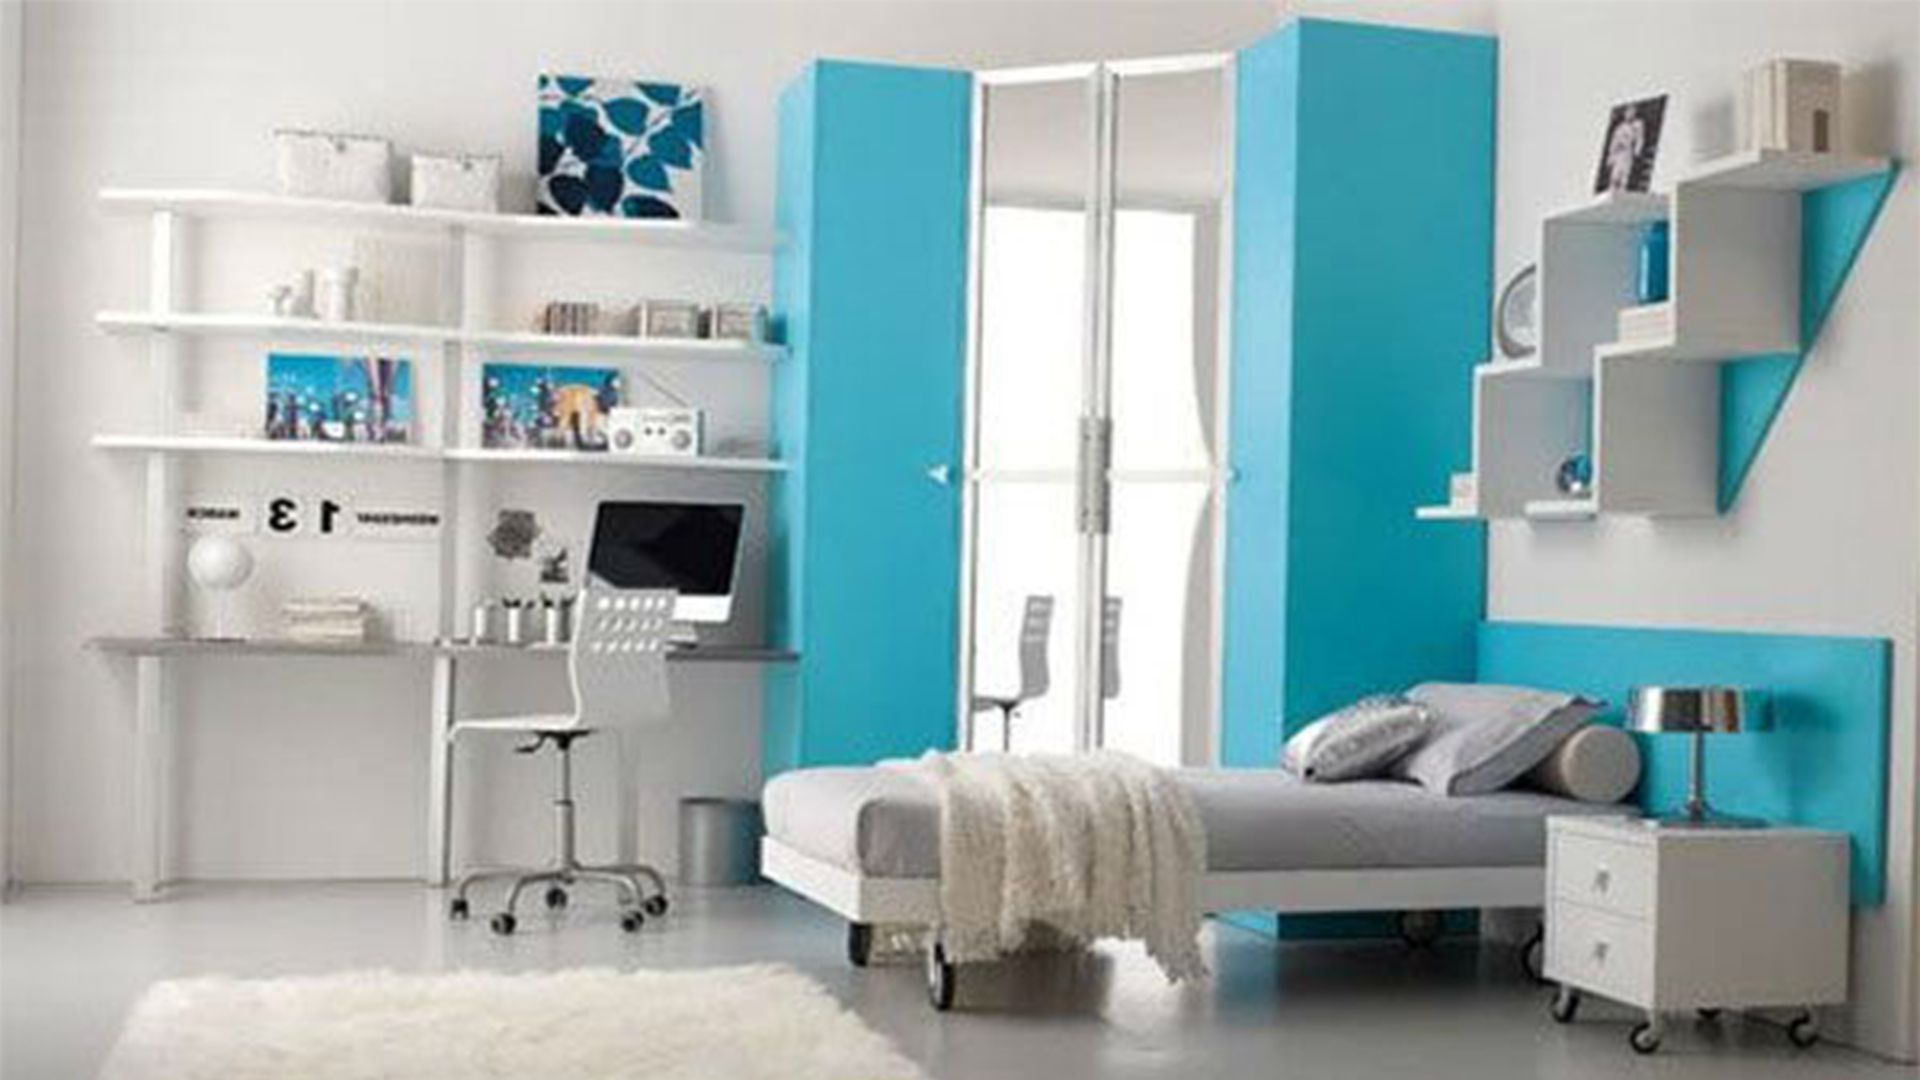 Cool bedroom wall designs for girls - Significant Blue Accents For Headboard And Storage To Complete White Teen Girl Bedroom